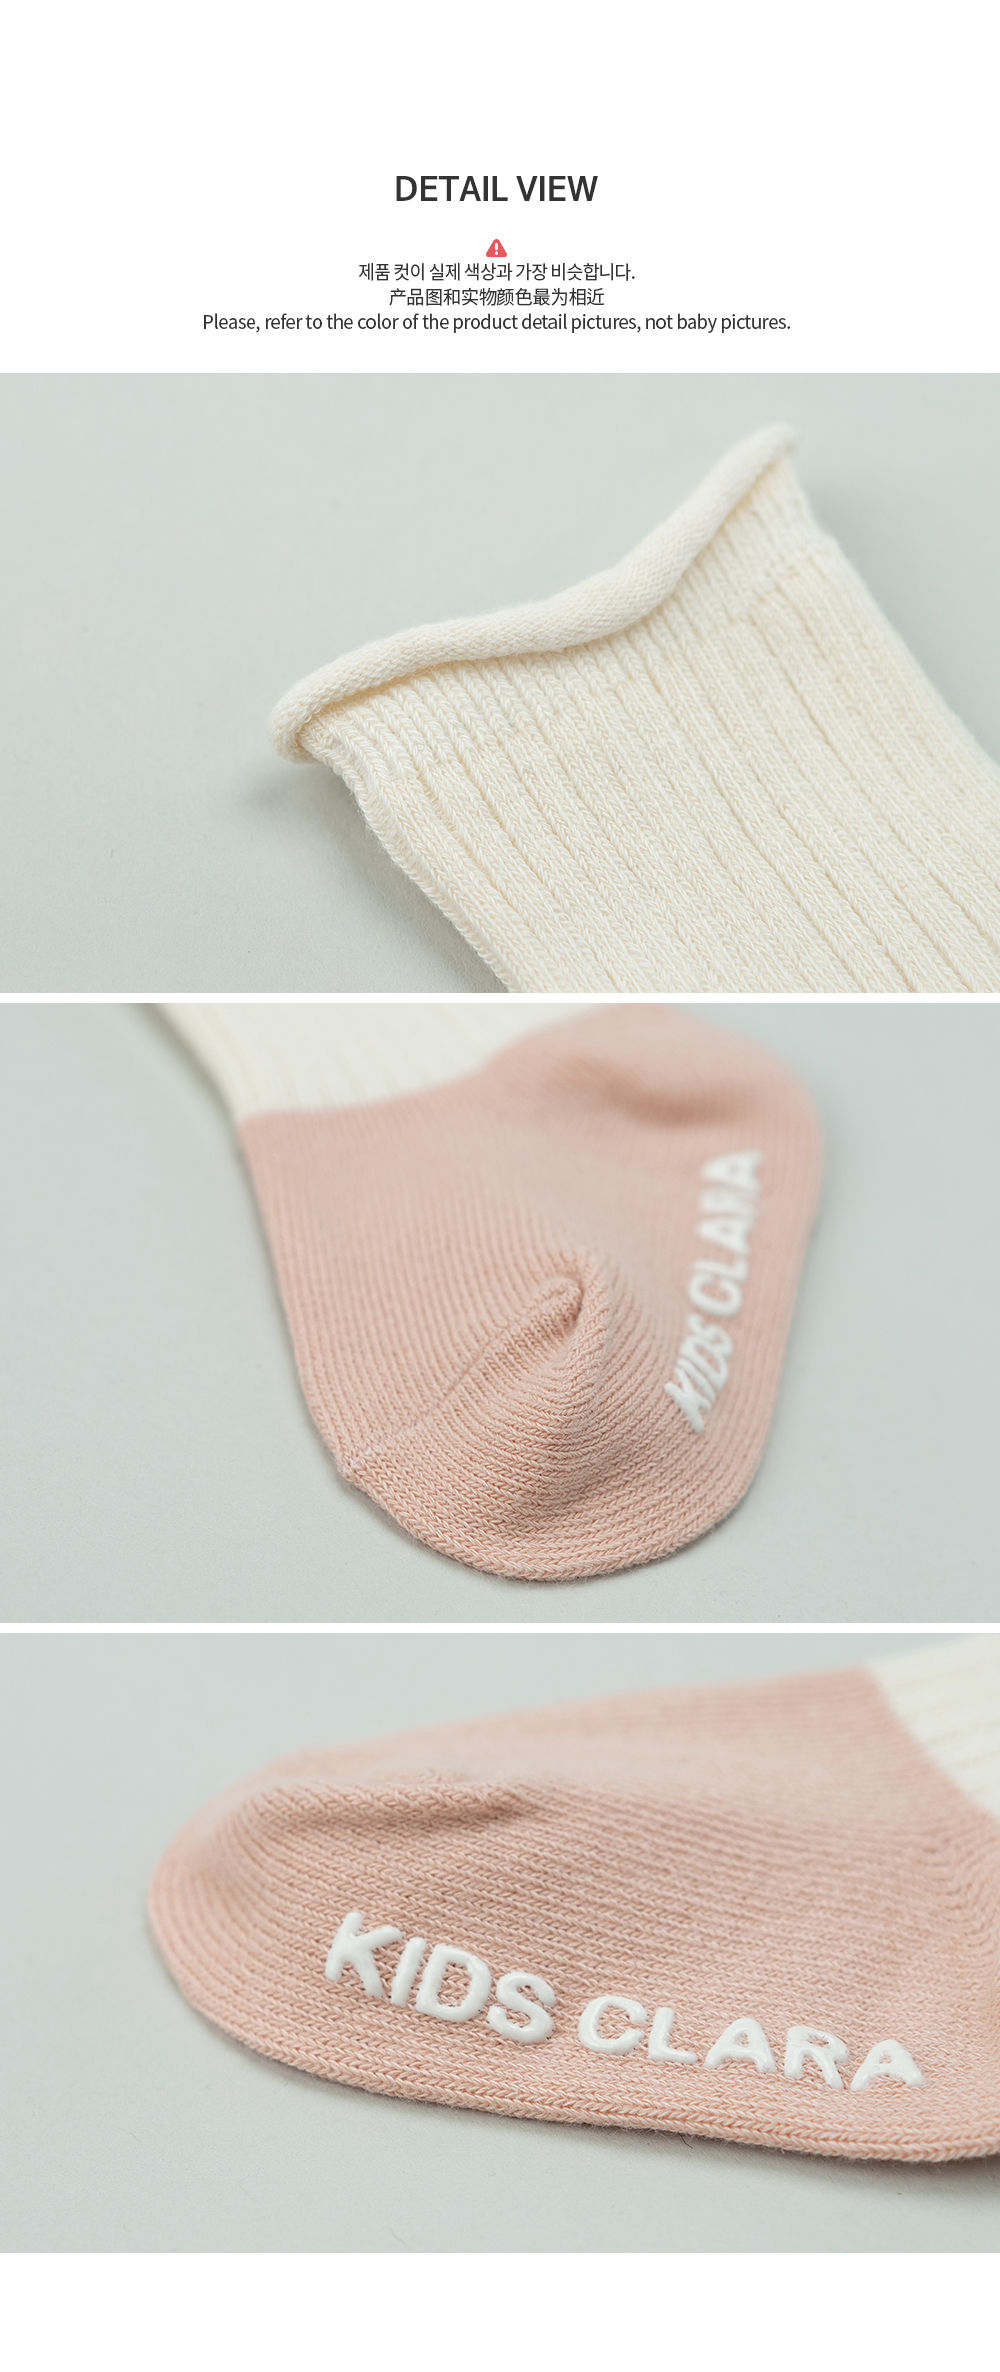 KIDS CLARA - Korean Children Fashion - #Kfashion4kids - Amber Rolling Baby socks [set of 5] - 7